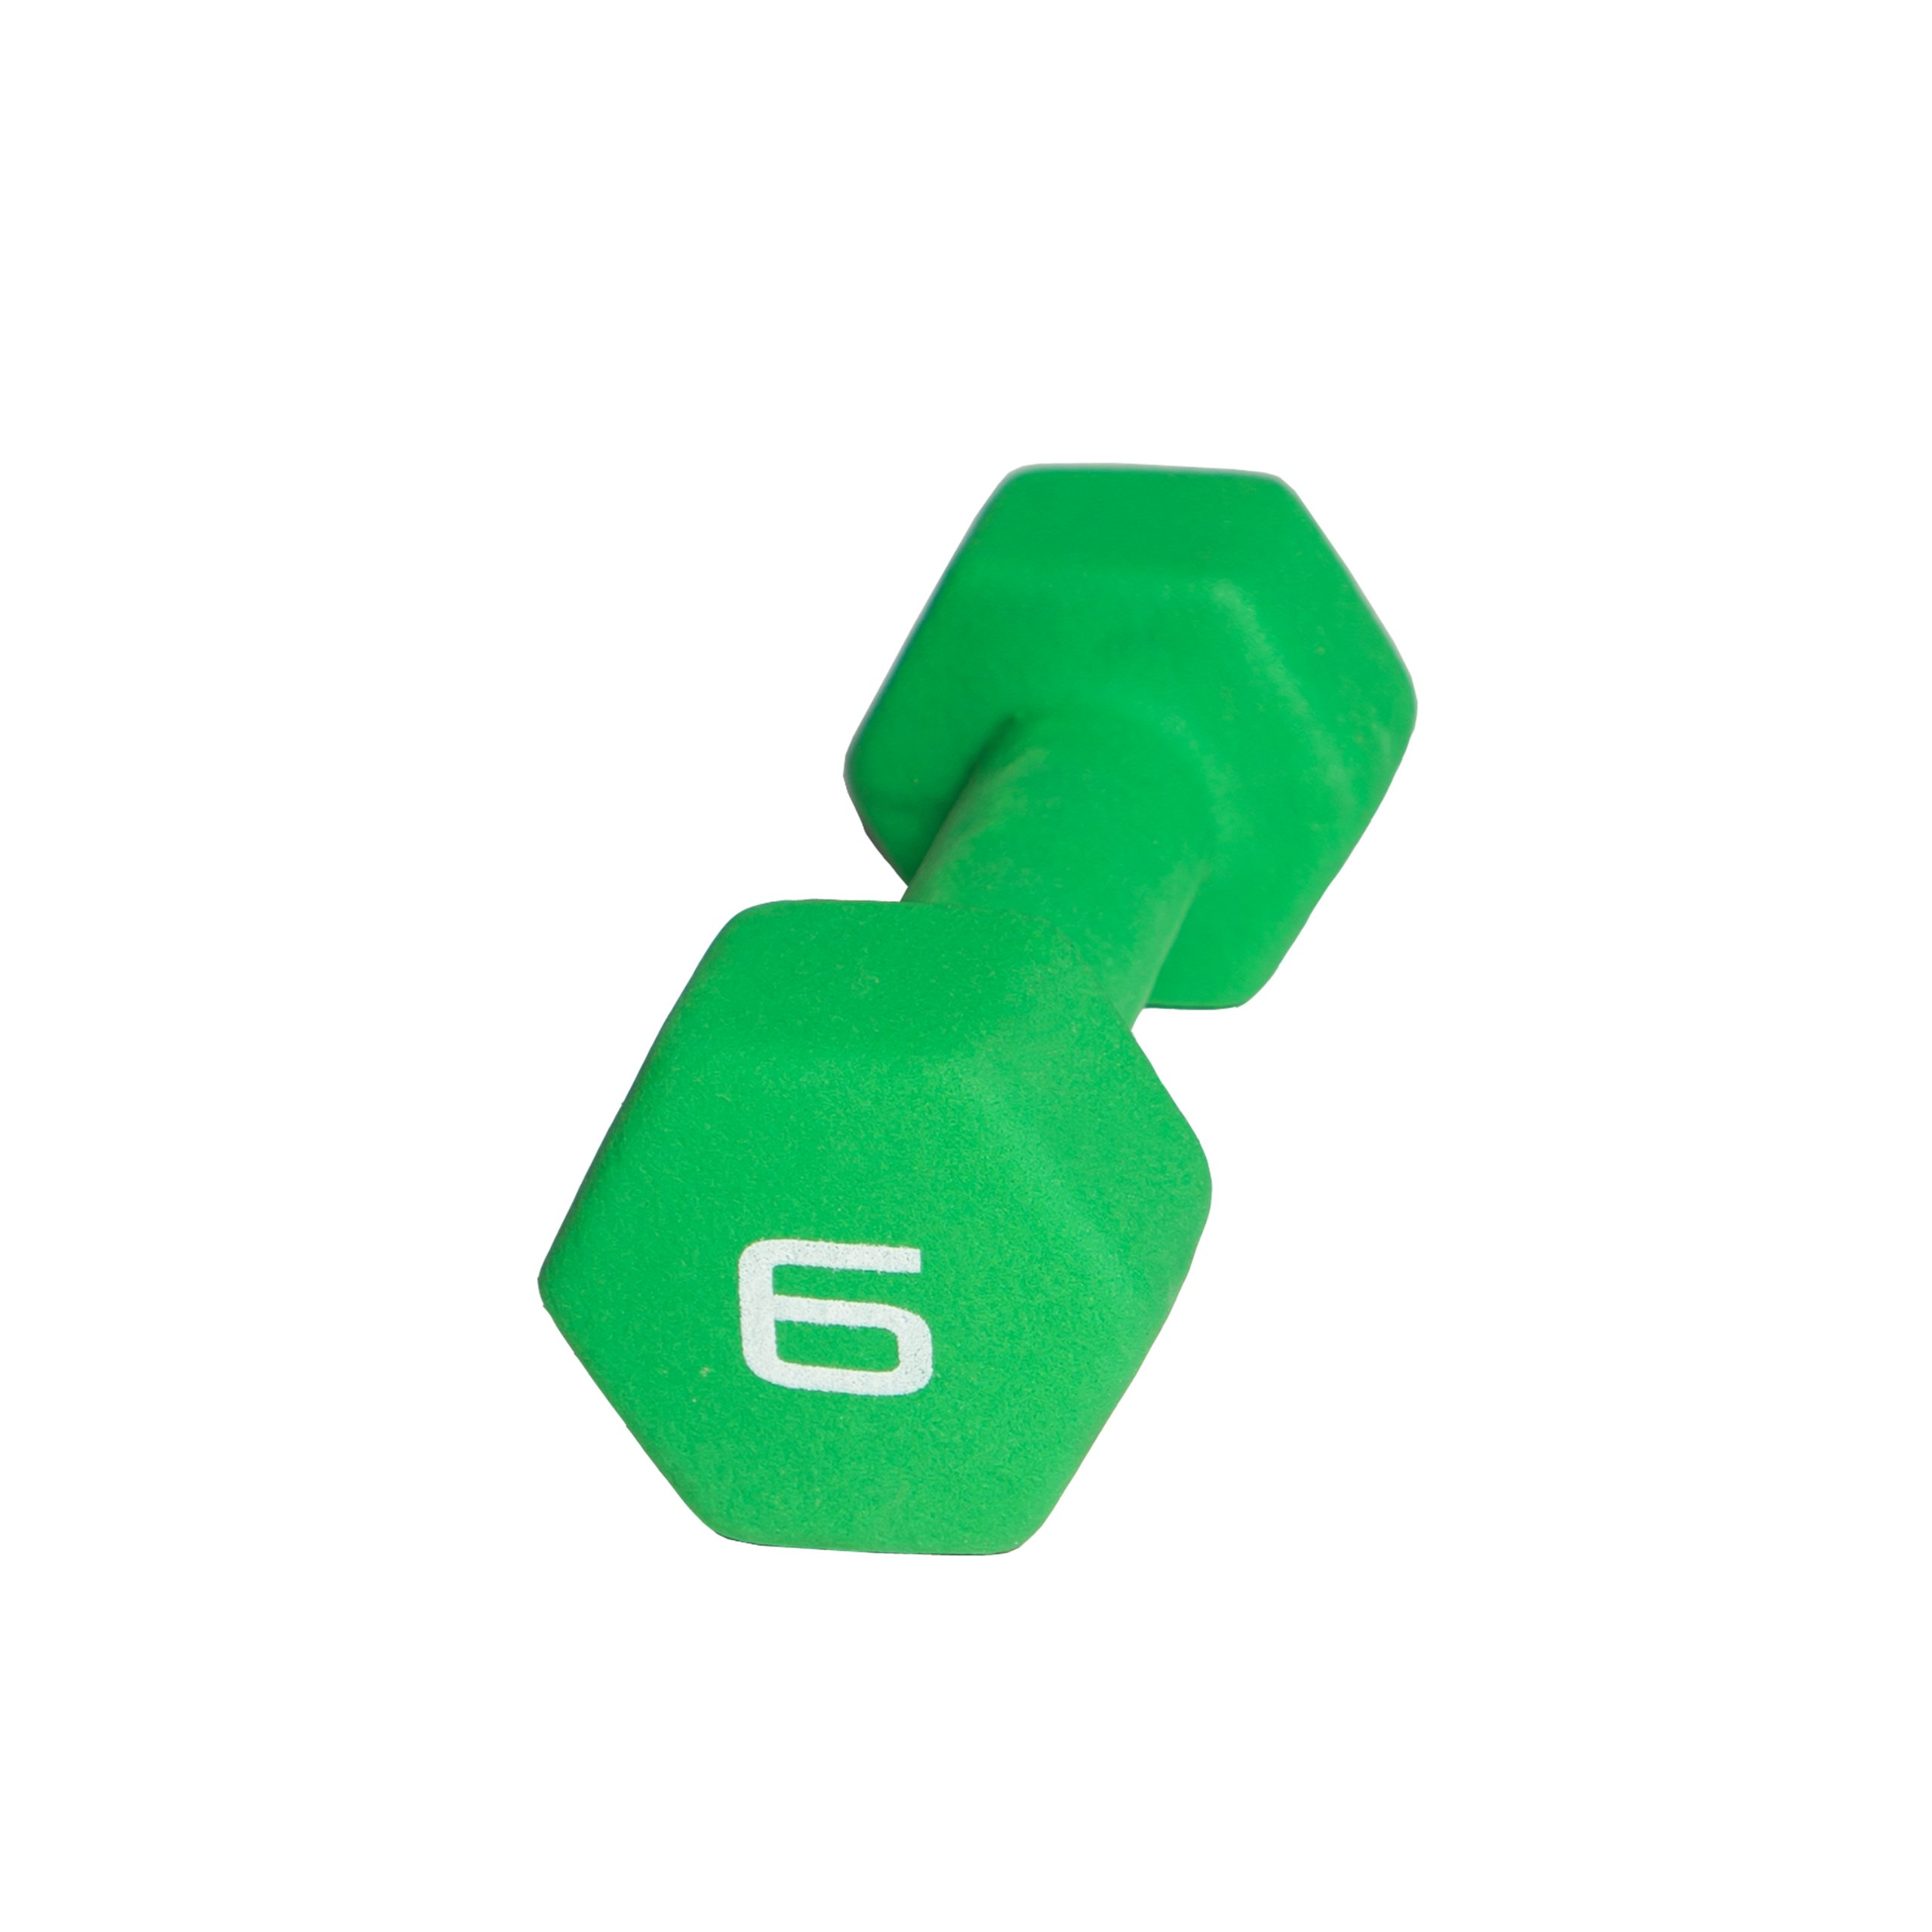 CAP Barbell Neoprene Dumbbell Weights, 6-Pound, Green, Single